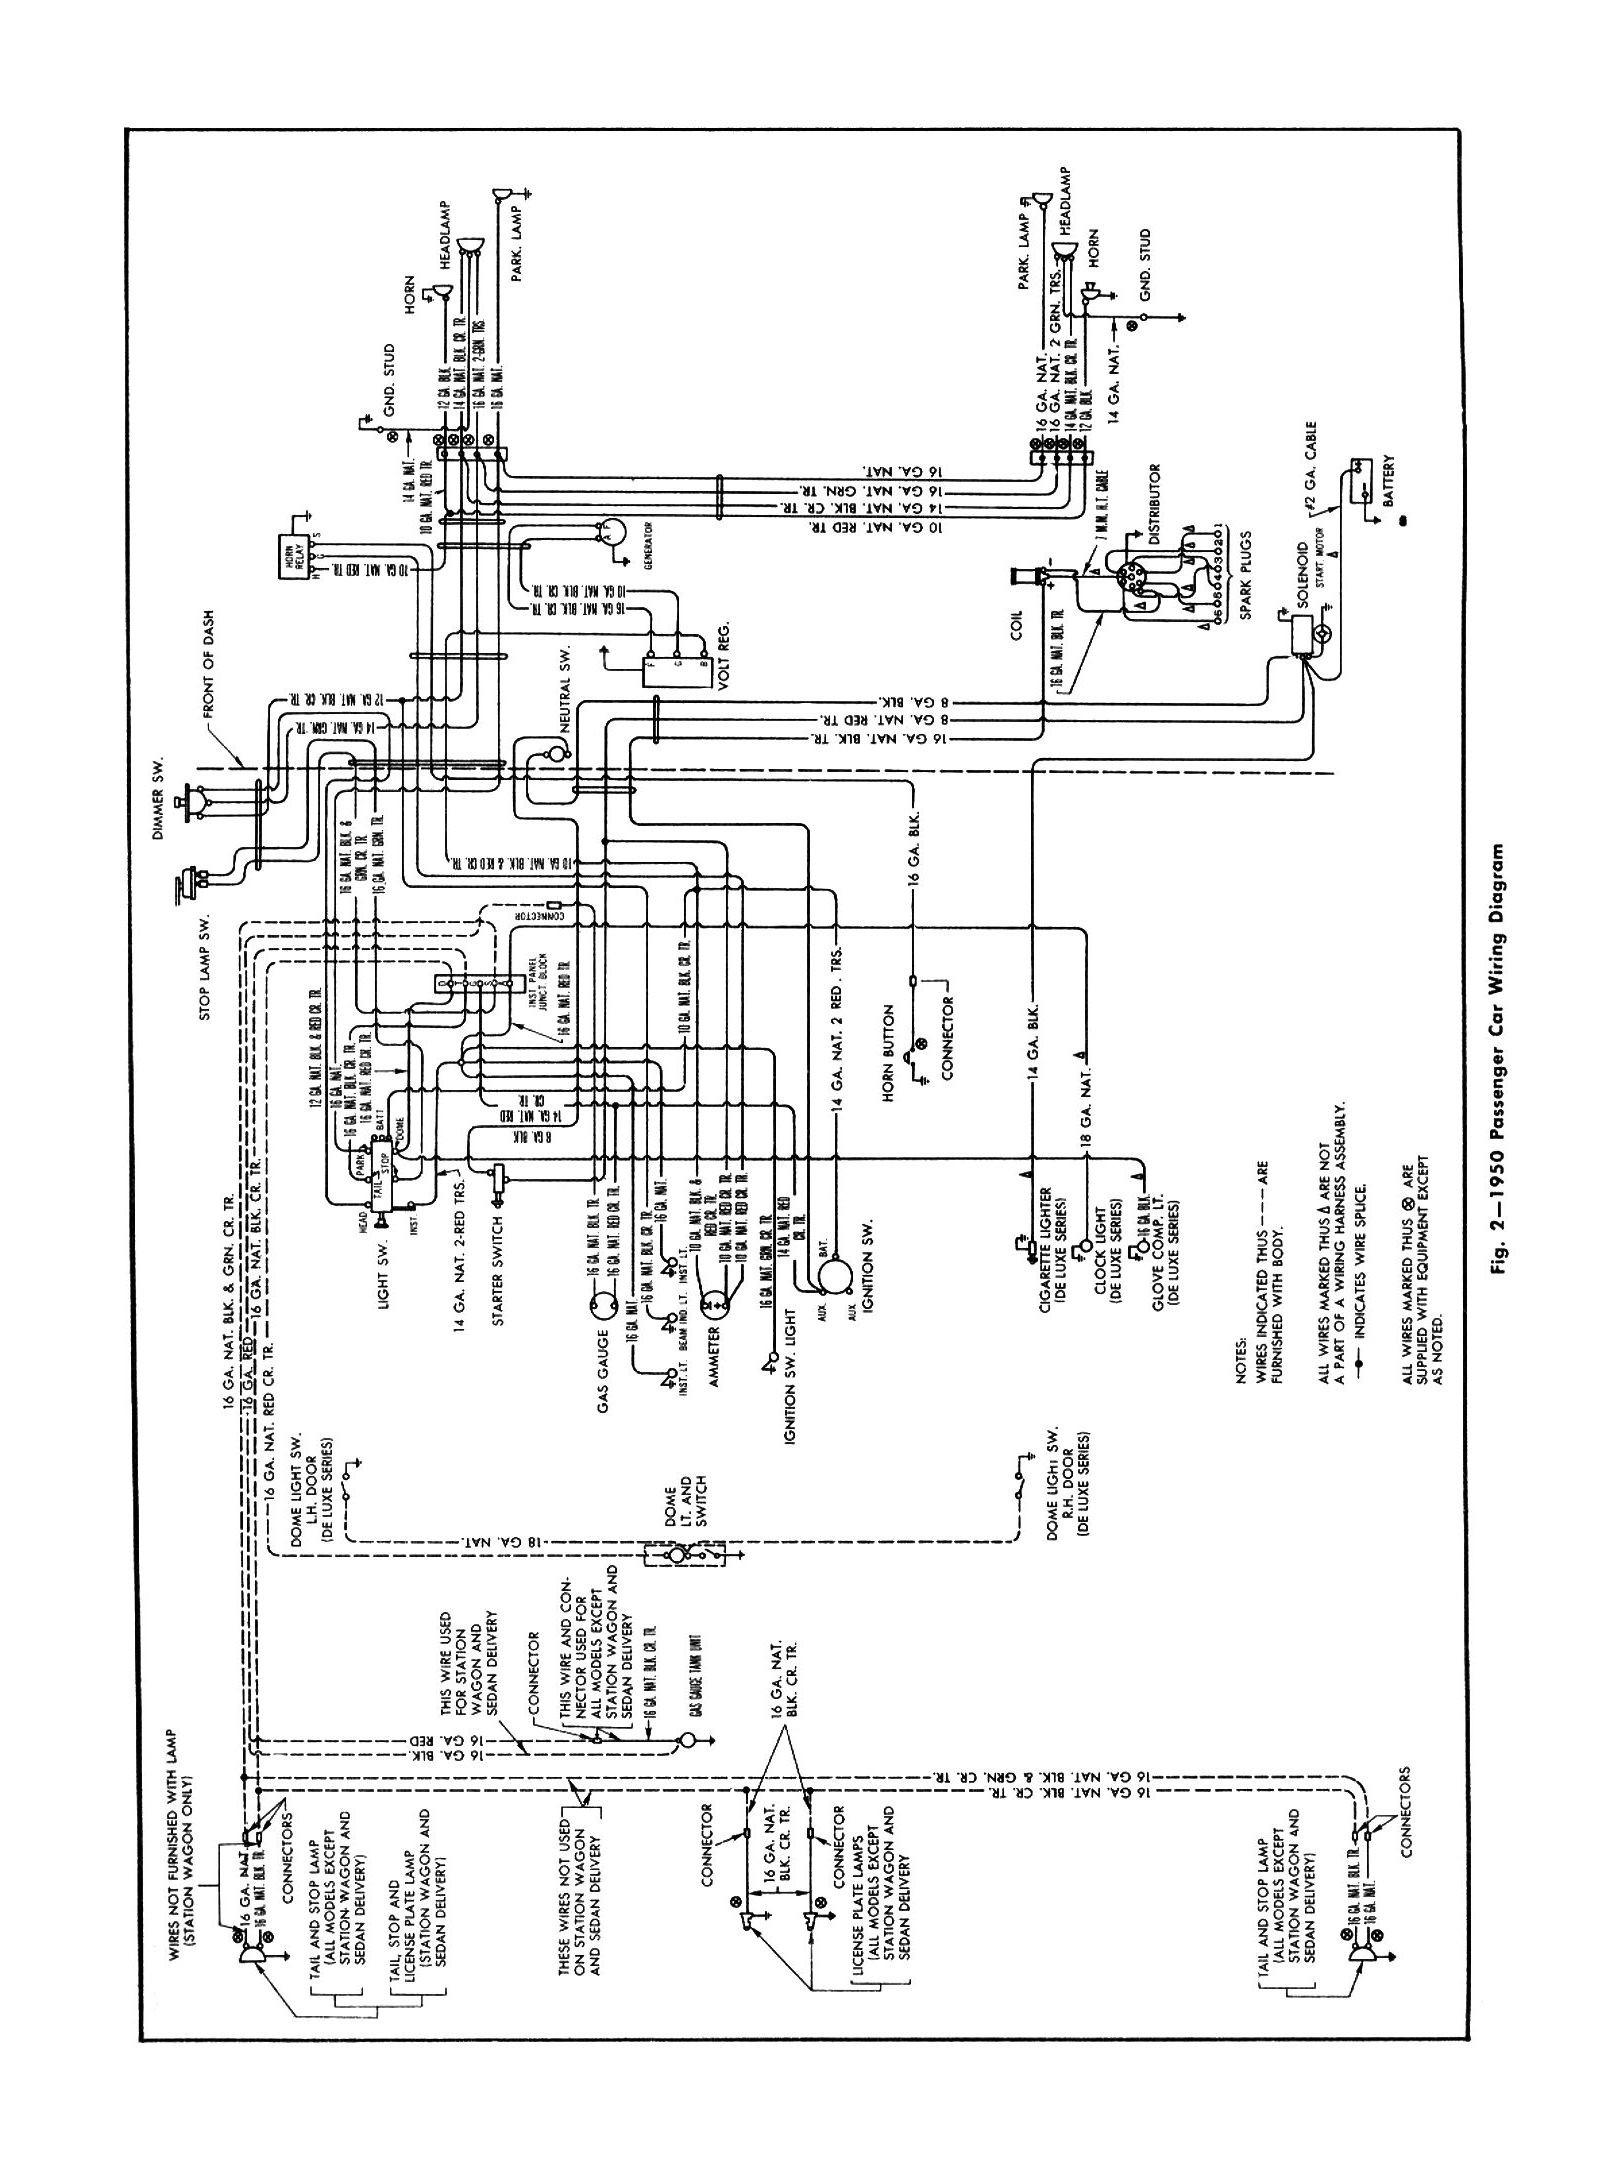 50car 1950 chevy truck wiring harness on 1950 download wirning diagrams Ford Schematics at bayanpartner.co